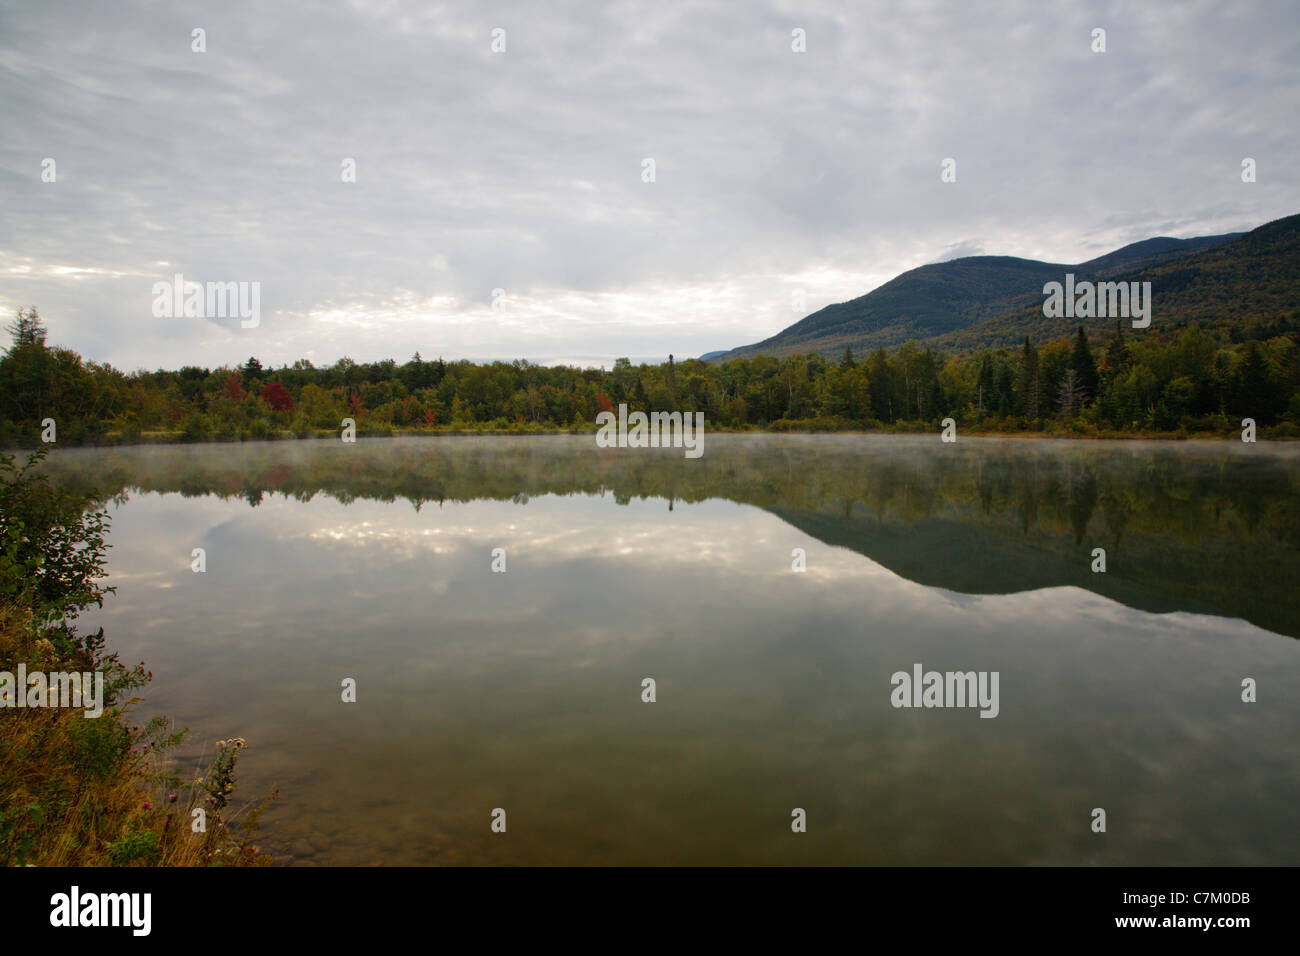 Durand Lake in Randolph, New Hampshire USA during the summer months - Stock Image